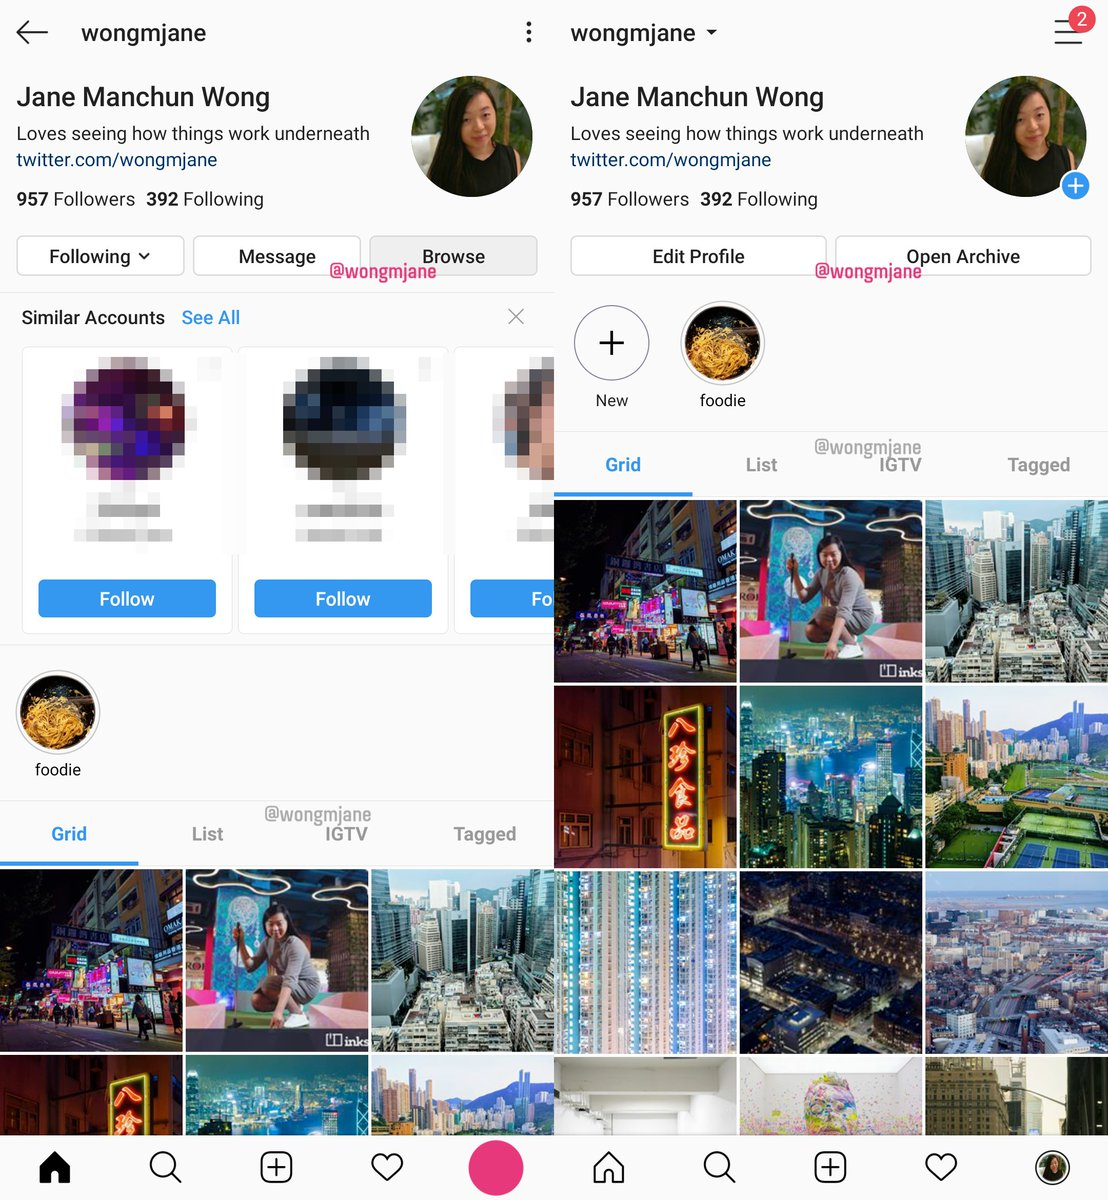 Instagram is testing a few shortcut buttons in the new profile UI: